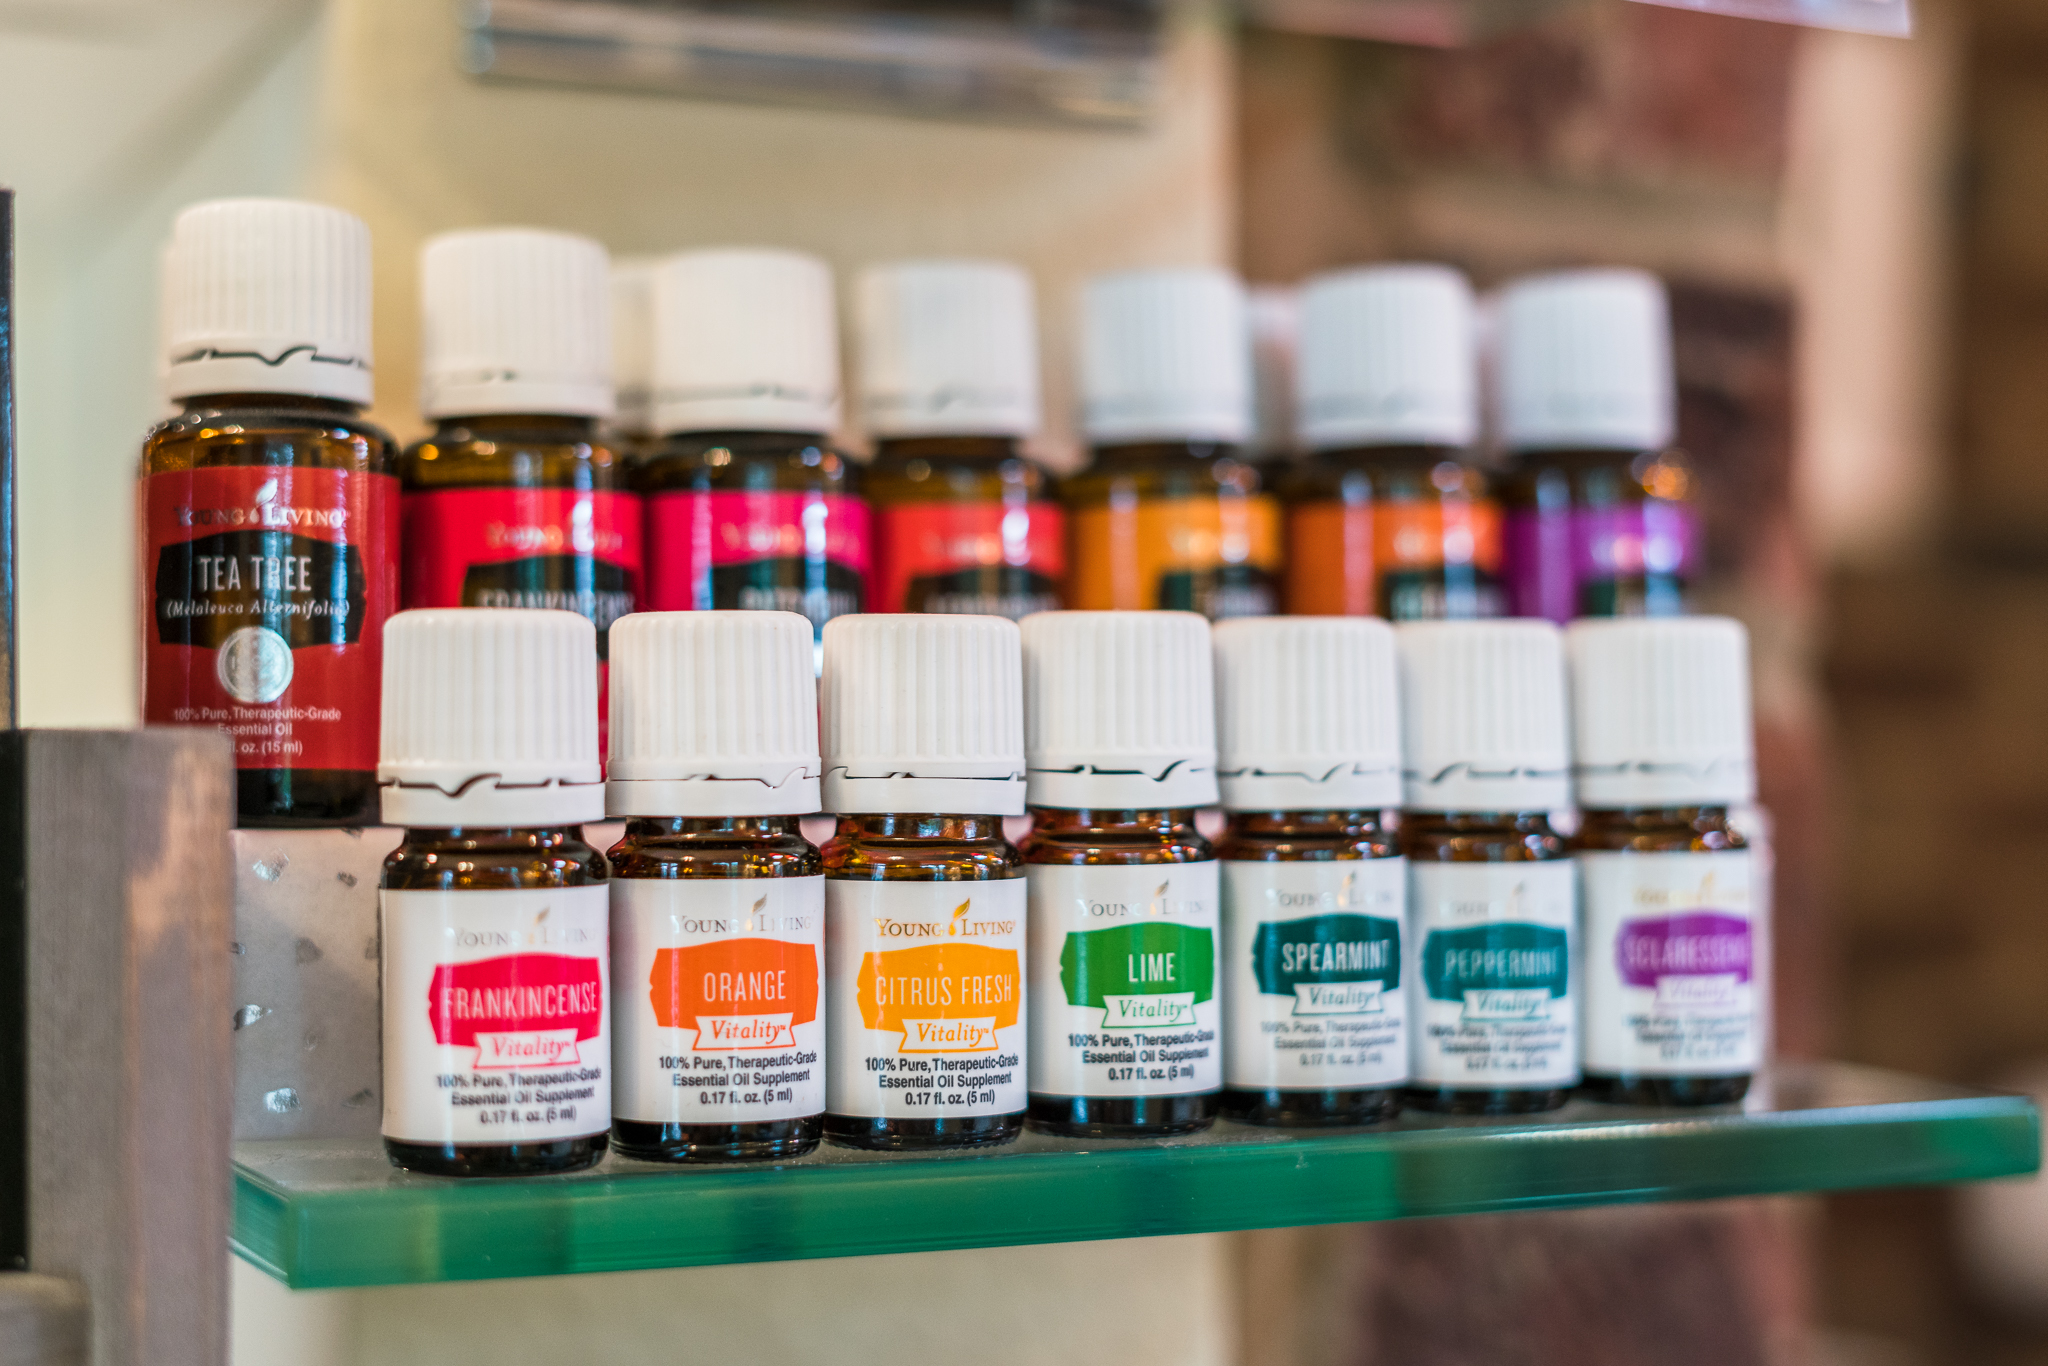 Young Living - Essential oils are an important part of our salon and spa. They can provide support for whatever the day brings your way! Willow Creek supports Young Living due to Young Living's Seed to Seal promise of providing pure oils from ethically sourced, naturally farmed land throughout the world.